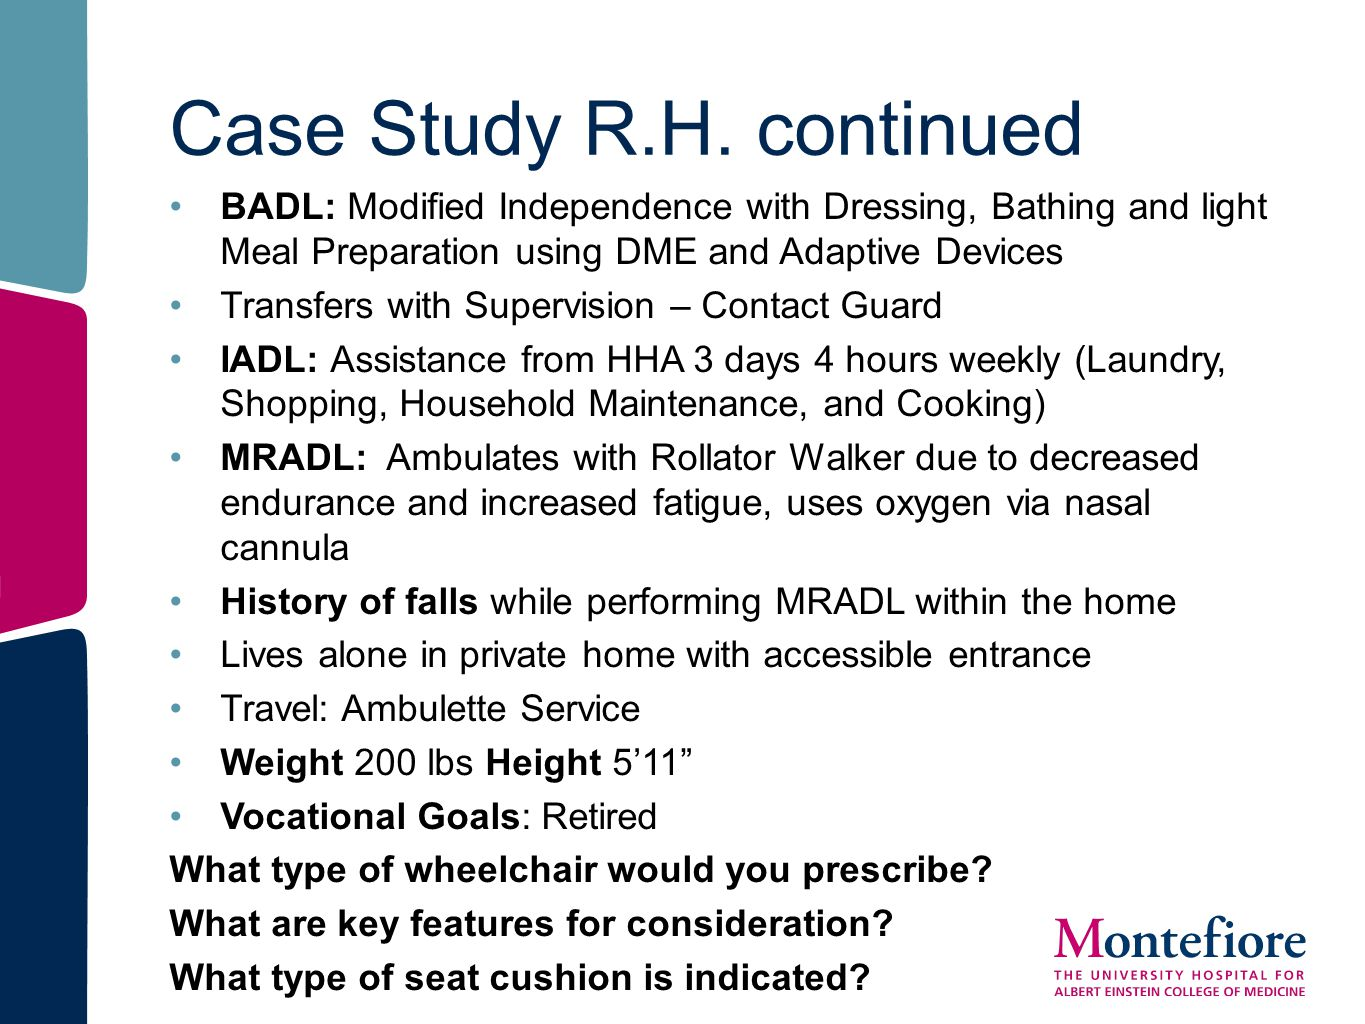 Case Study R.H. continued BADL: Modified Independence with Dressing, Bathing and light Meal Preparation using DME and Adaptive Devices Transfers with